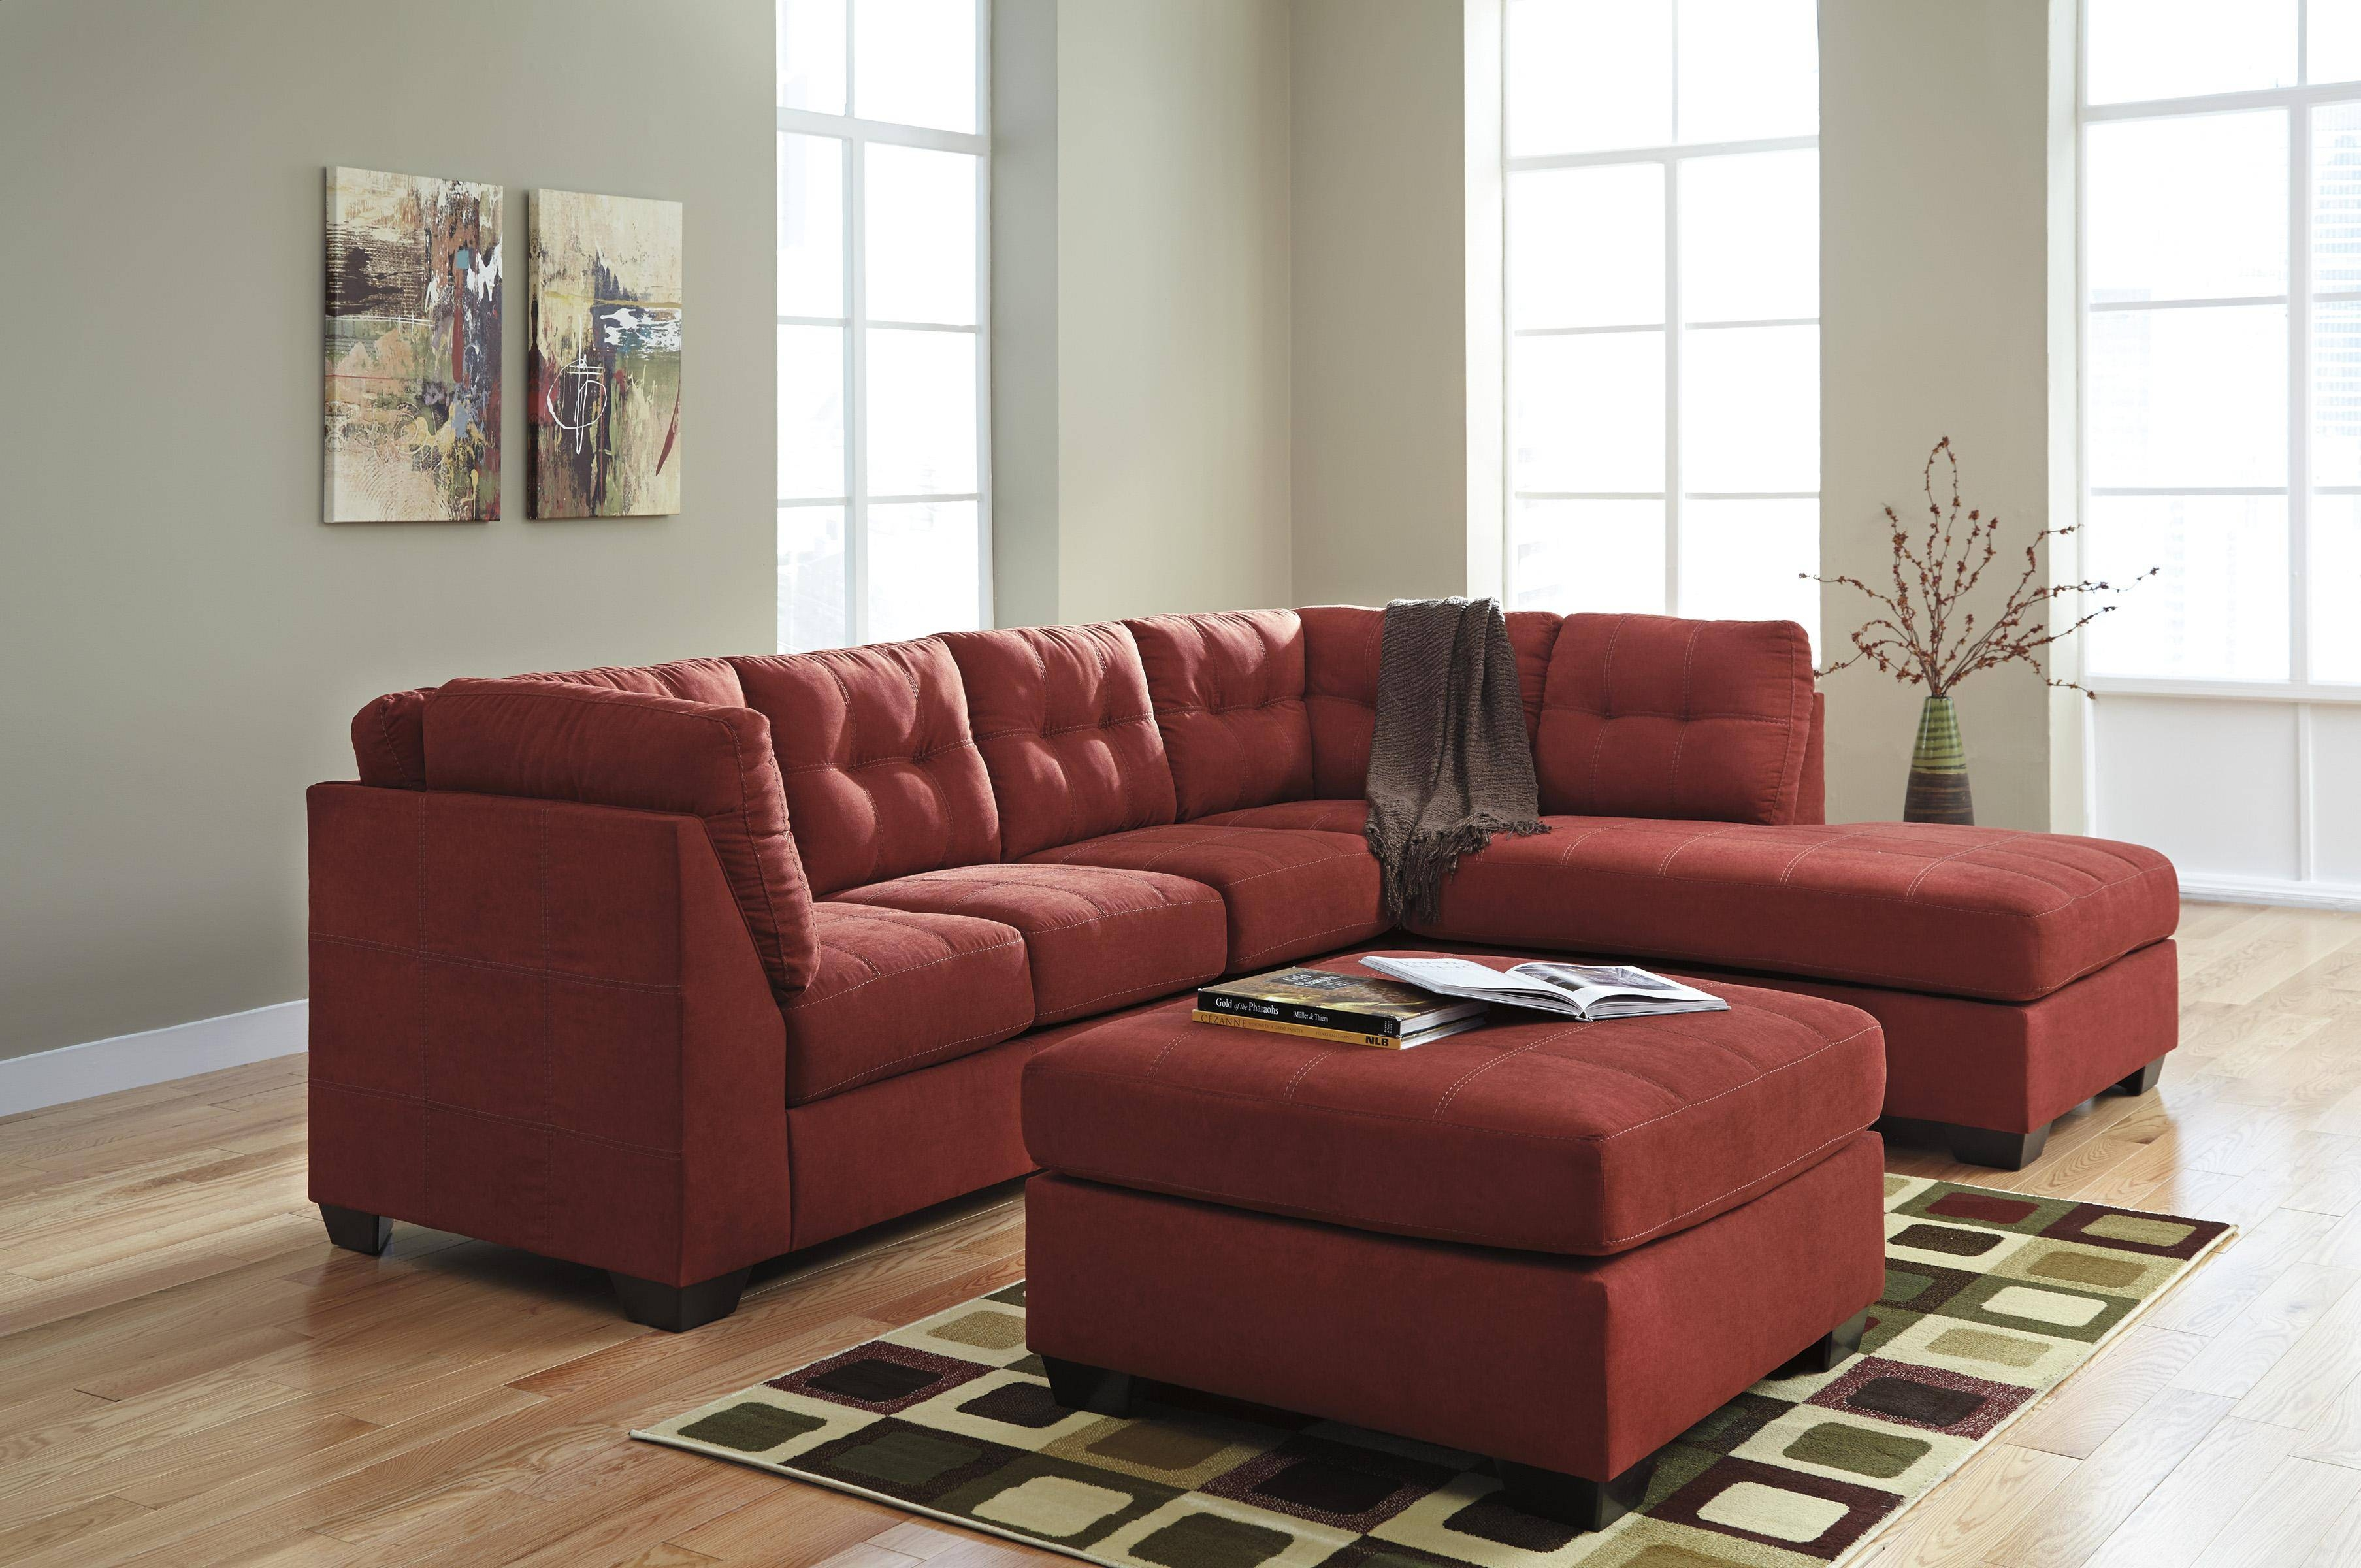 Benchcraft Maier - Sienna 2-Piece Sectional W/ Sleeper Sofa with regard to Sectional Sofas With Sleeper and Chaise (Image 5 of 30)